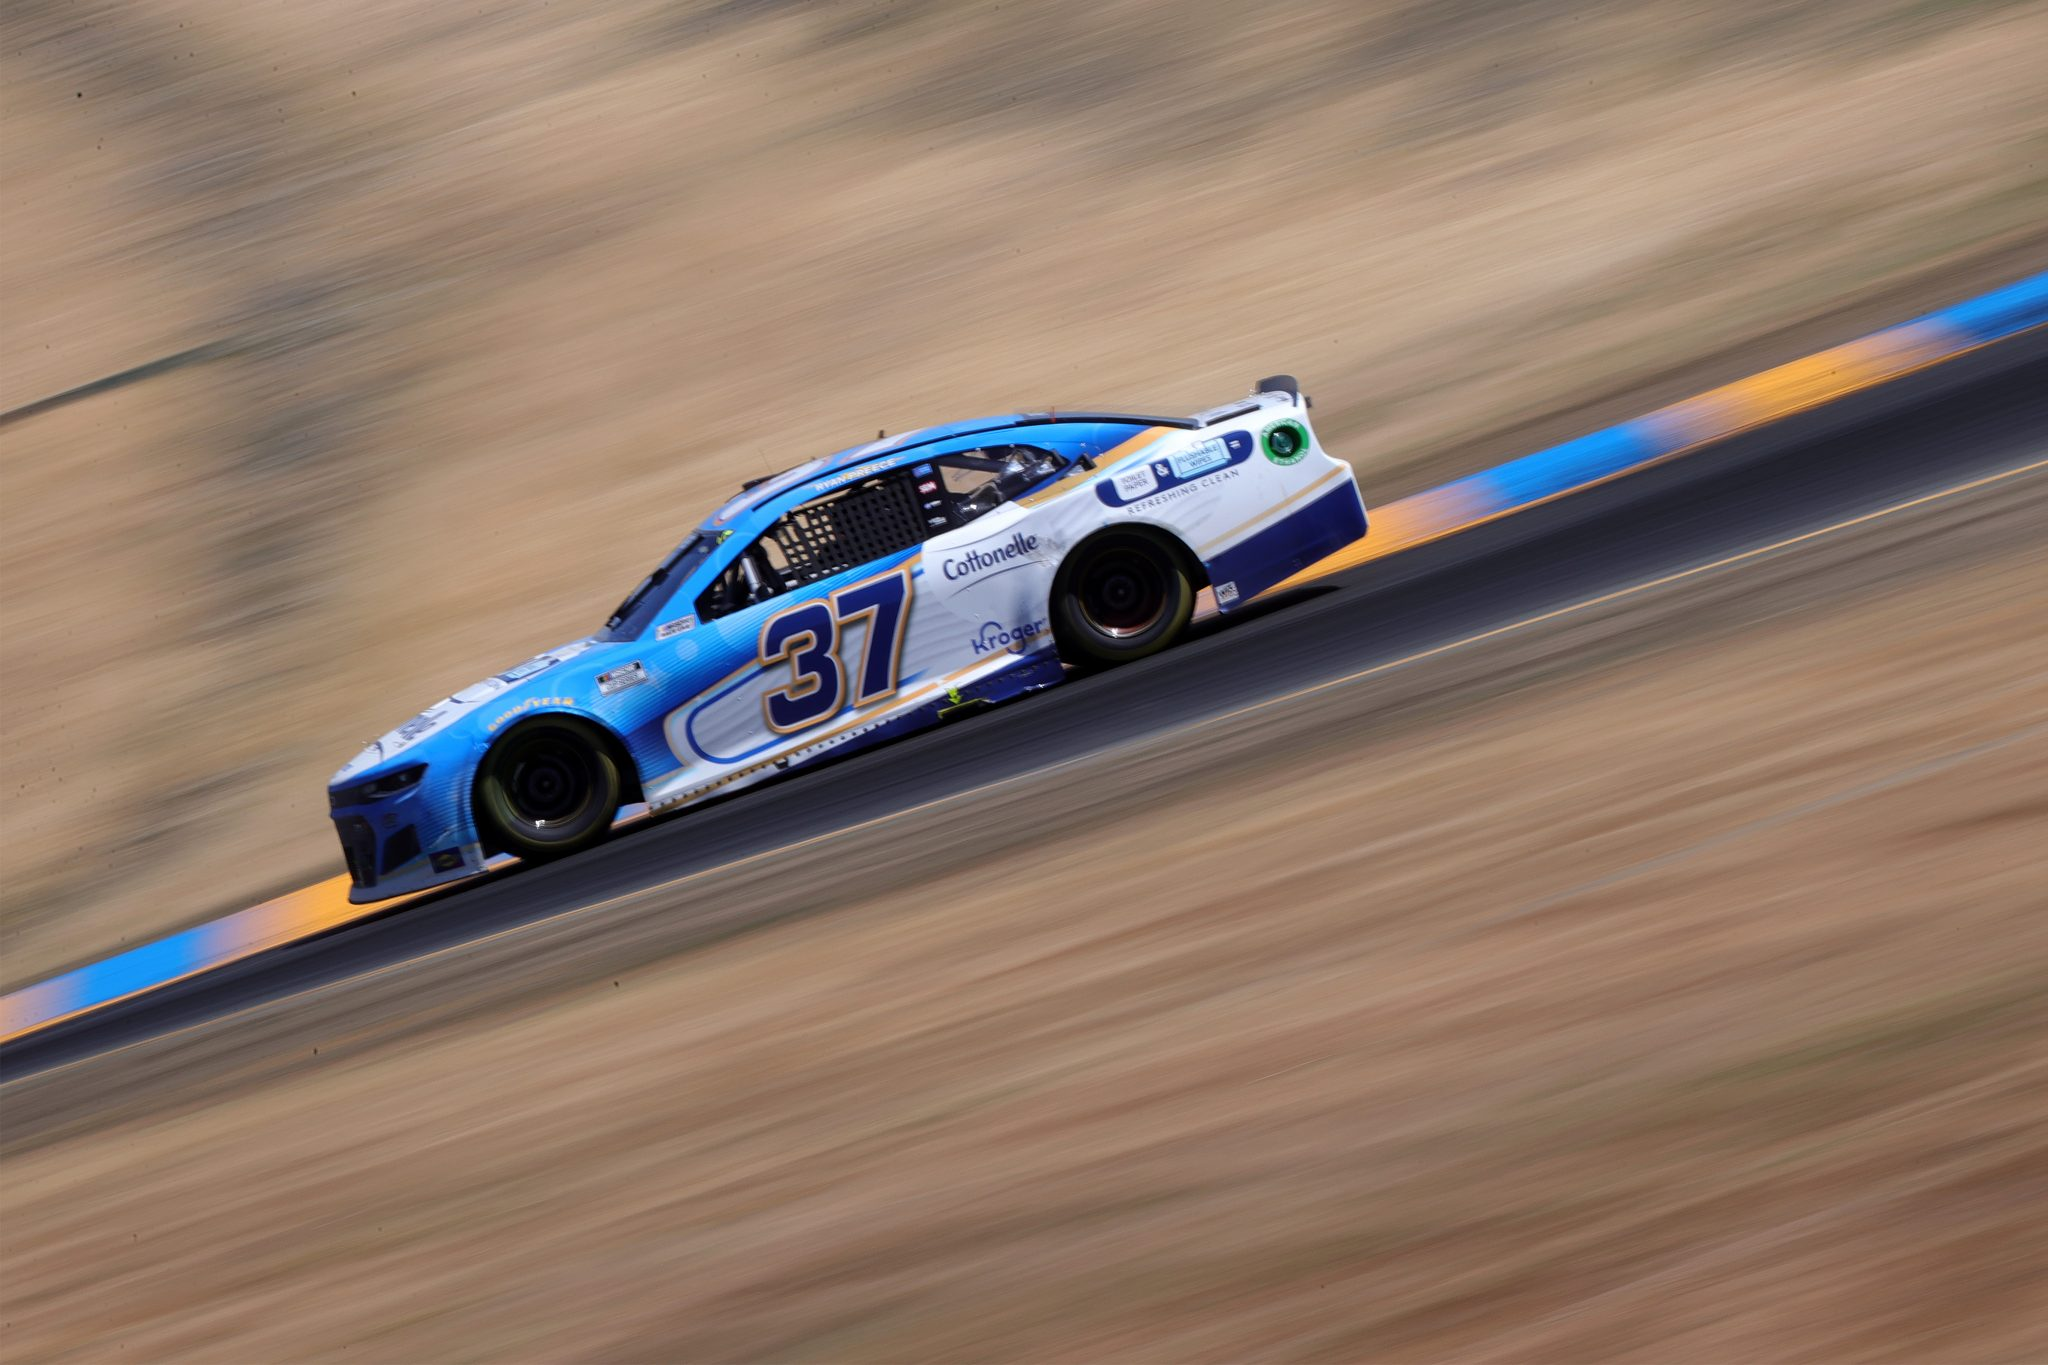 SONOMA, CALIFORNIA - JUNE 06: Ryan Preece, driver of the #37 Cottonelle Chevrolet, drives during the NASCAR Cup Series Toyota/Save Mart 350 at Sonoma Raceway on June 06, 2021 in Sonoma, California. (Photo by Carmen Mandato/Getty Images) | Getty Images